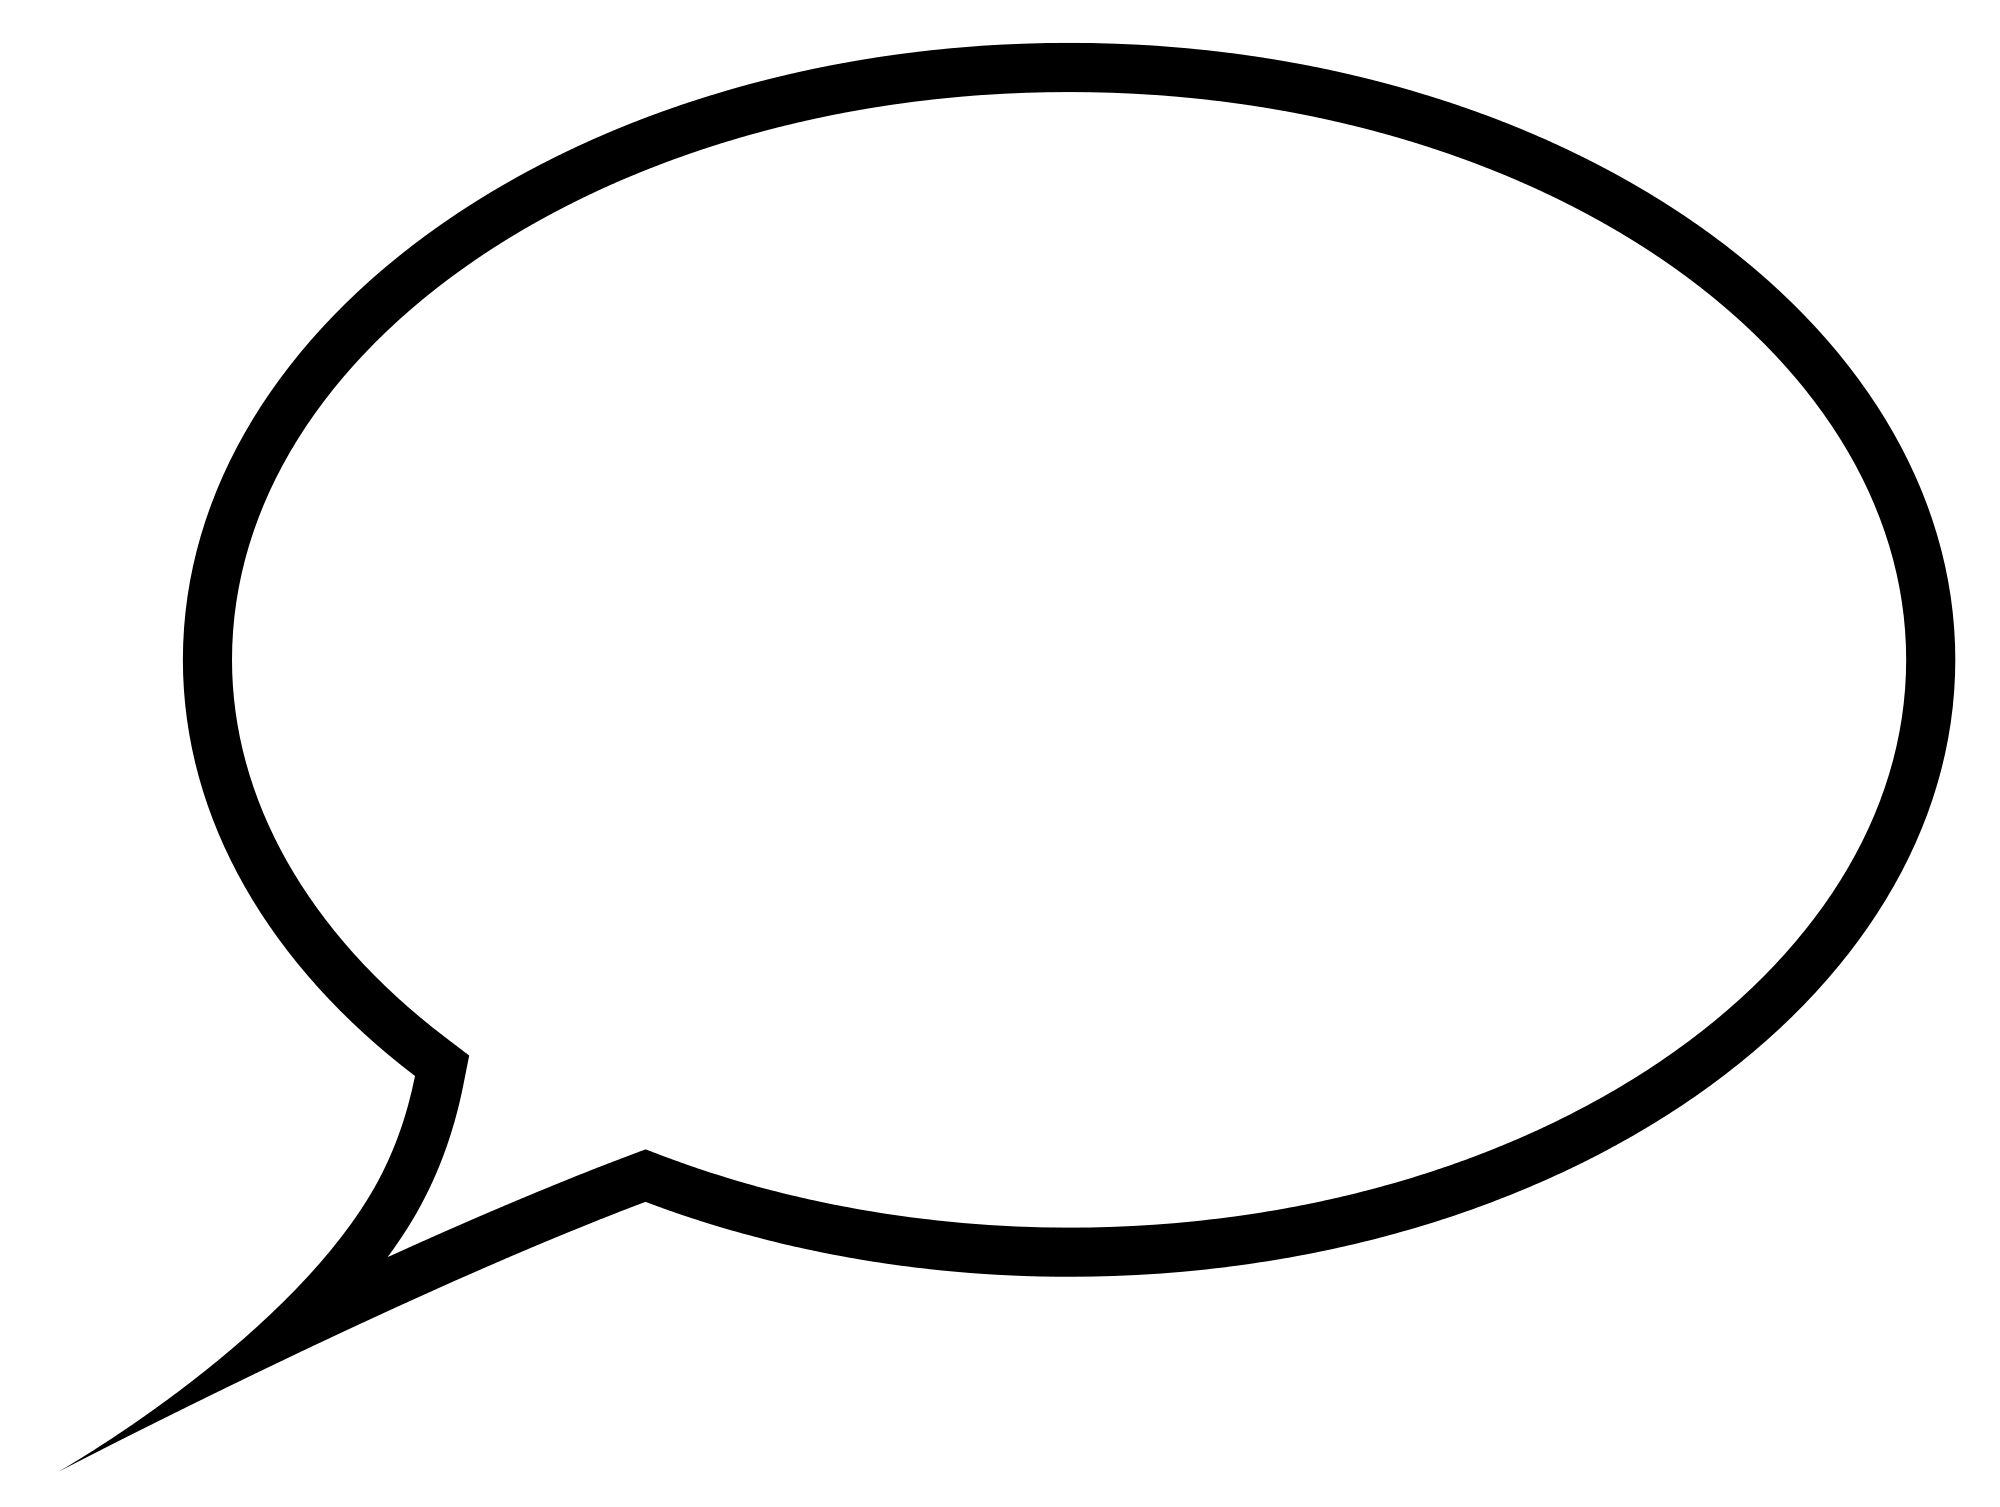 Blank speech bubble png. Transparent stickpng download